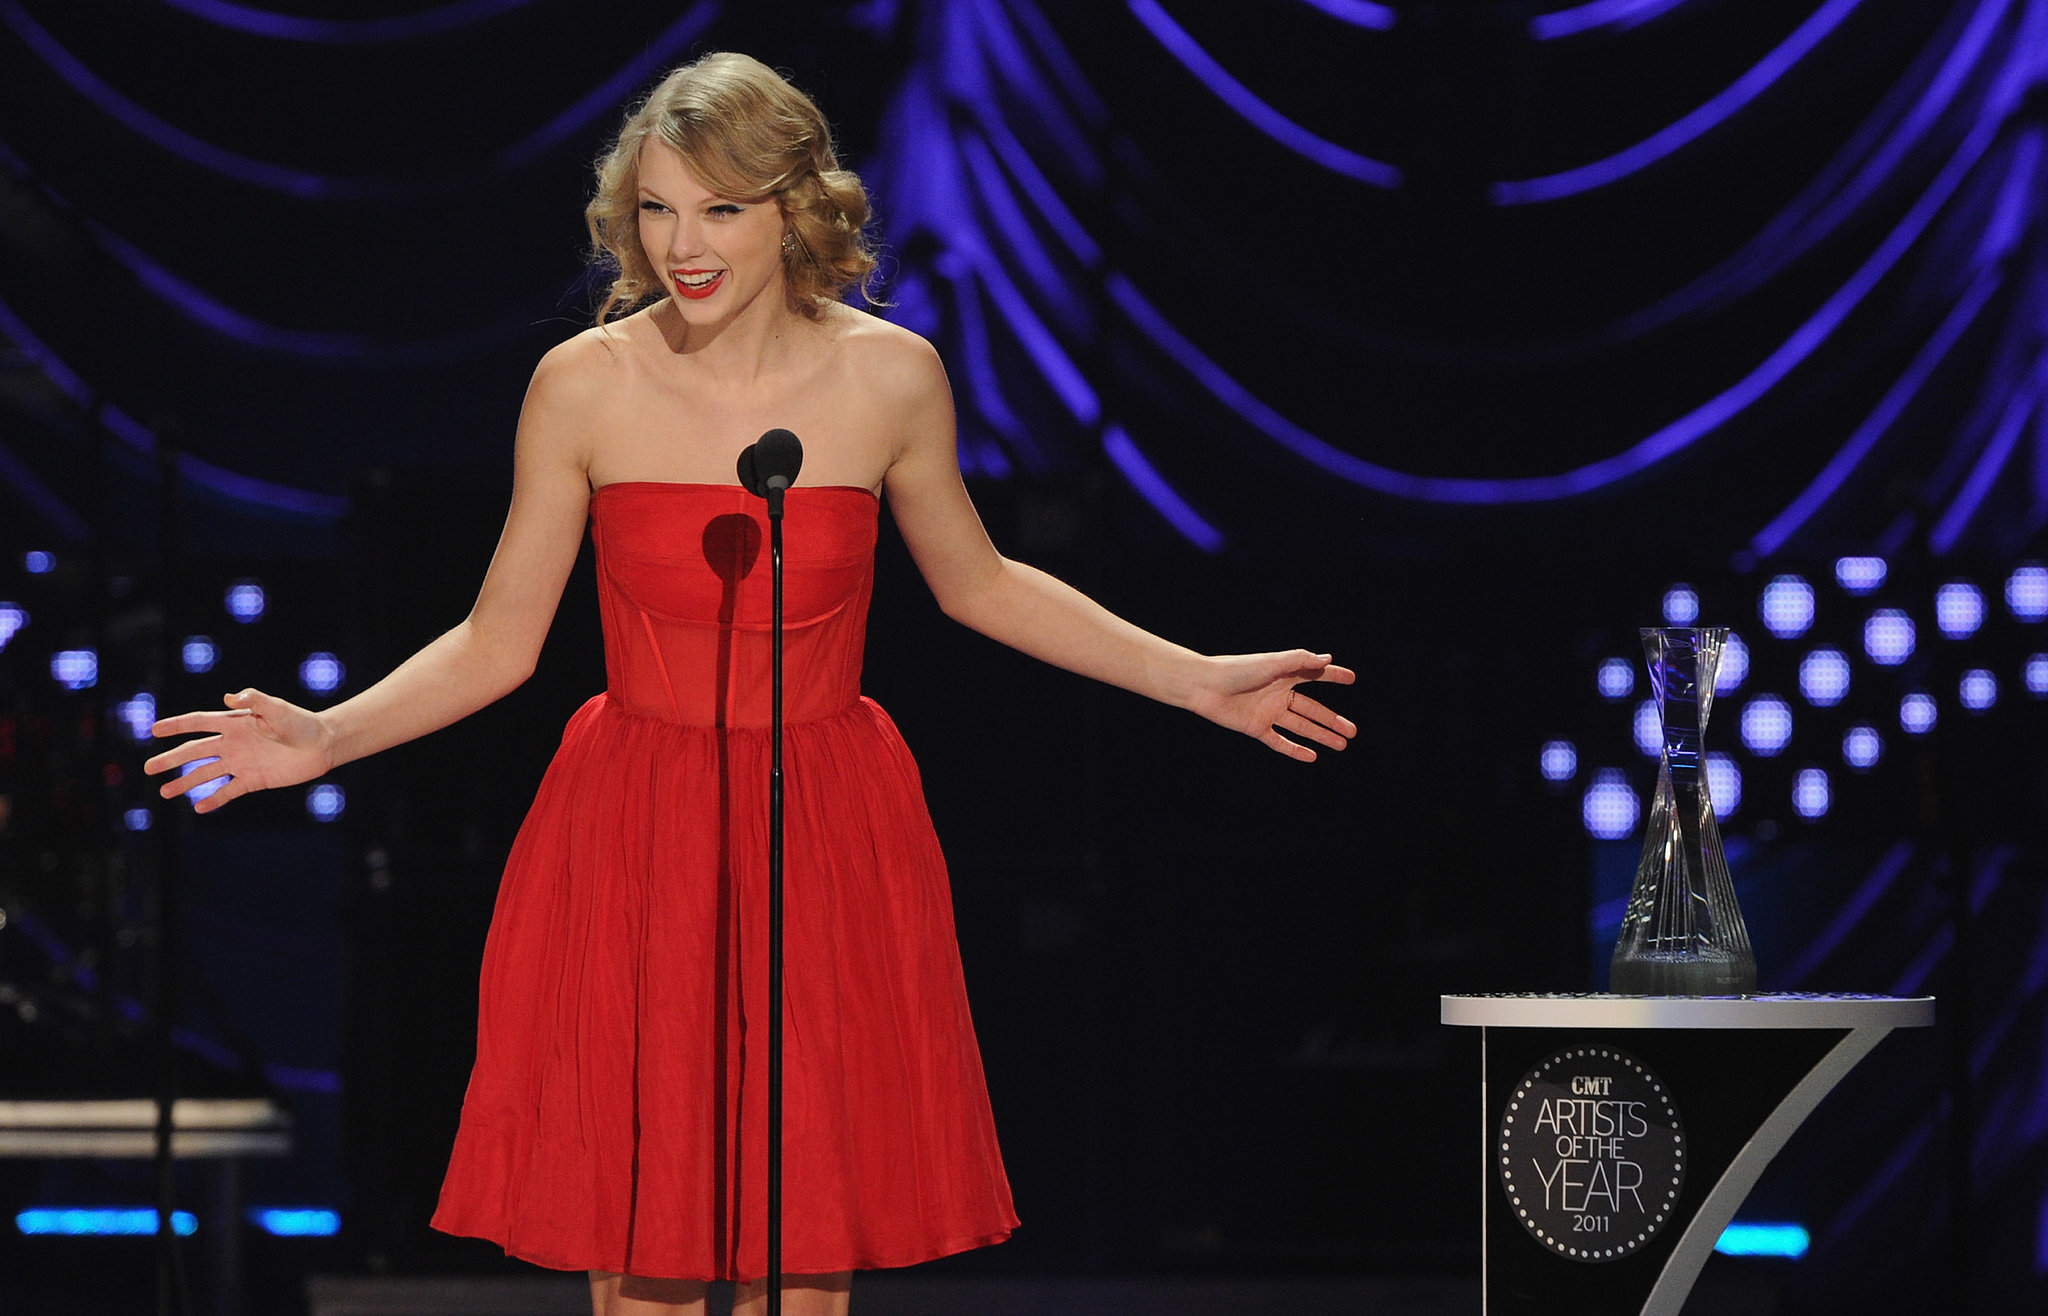 Taylor Swift was honored at the CMT Artists of the Year event in